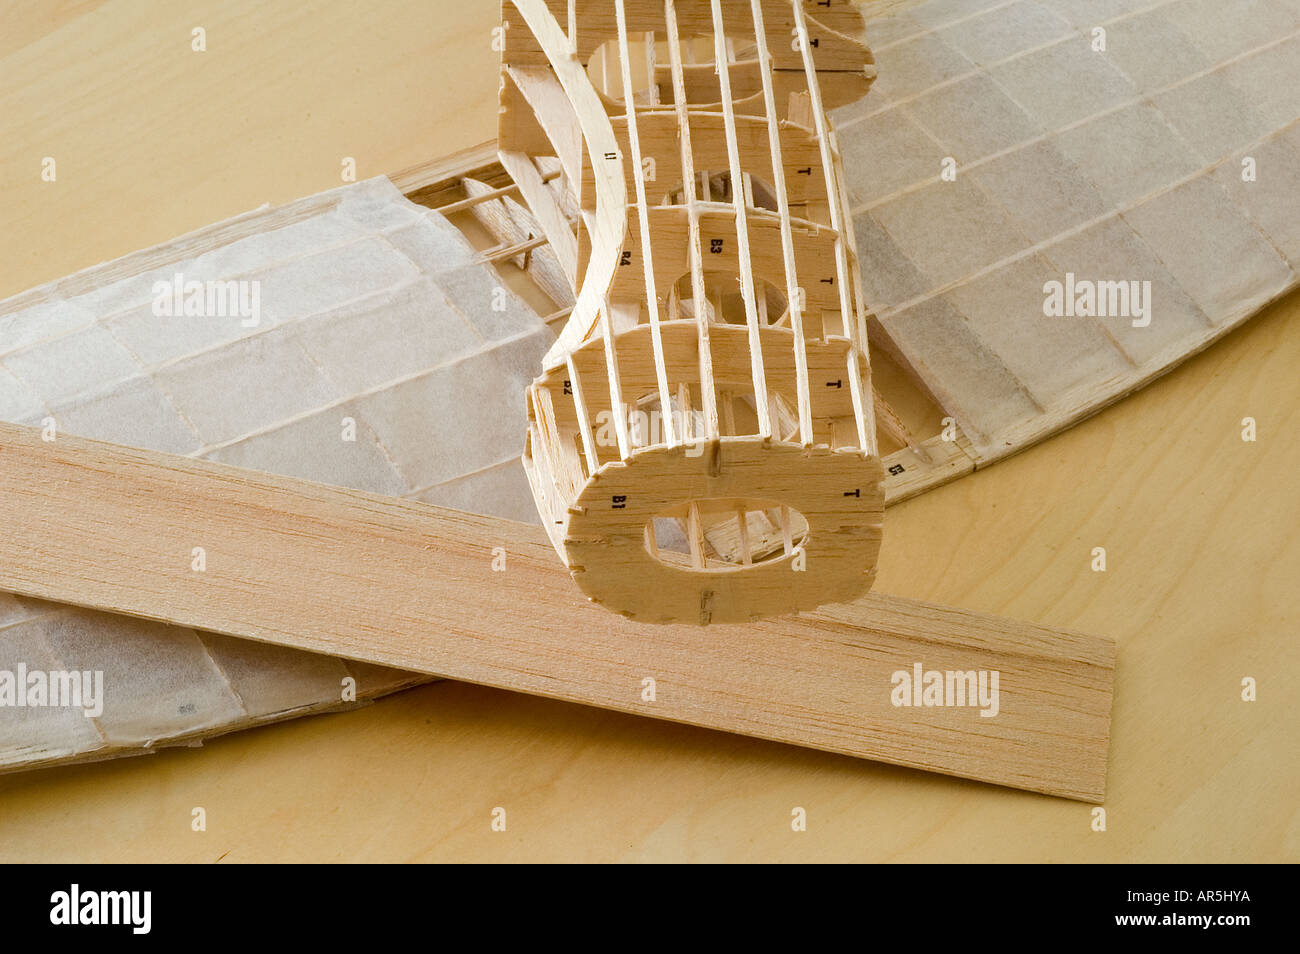 frame of a model airplane kit constructed of balsa wood stock photo royalty free image 9112185. Black Bedroom Furniture Sets. Home Design Ideas